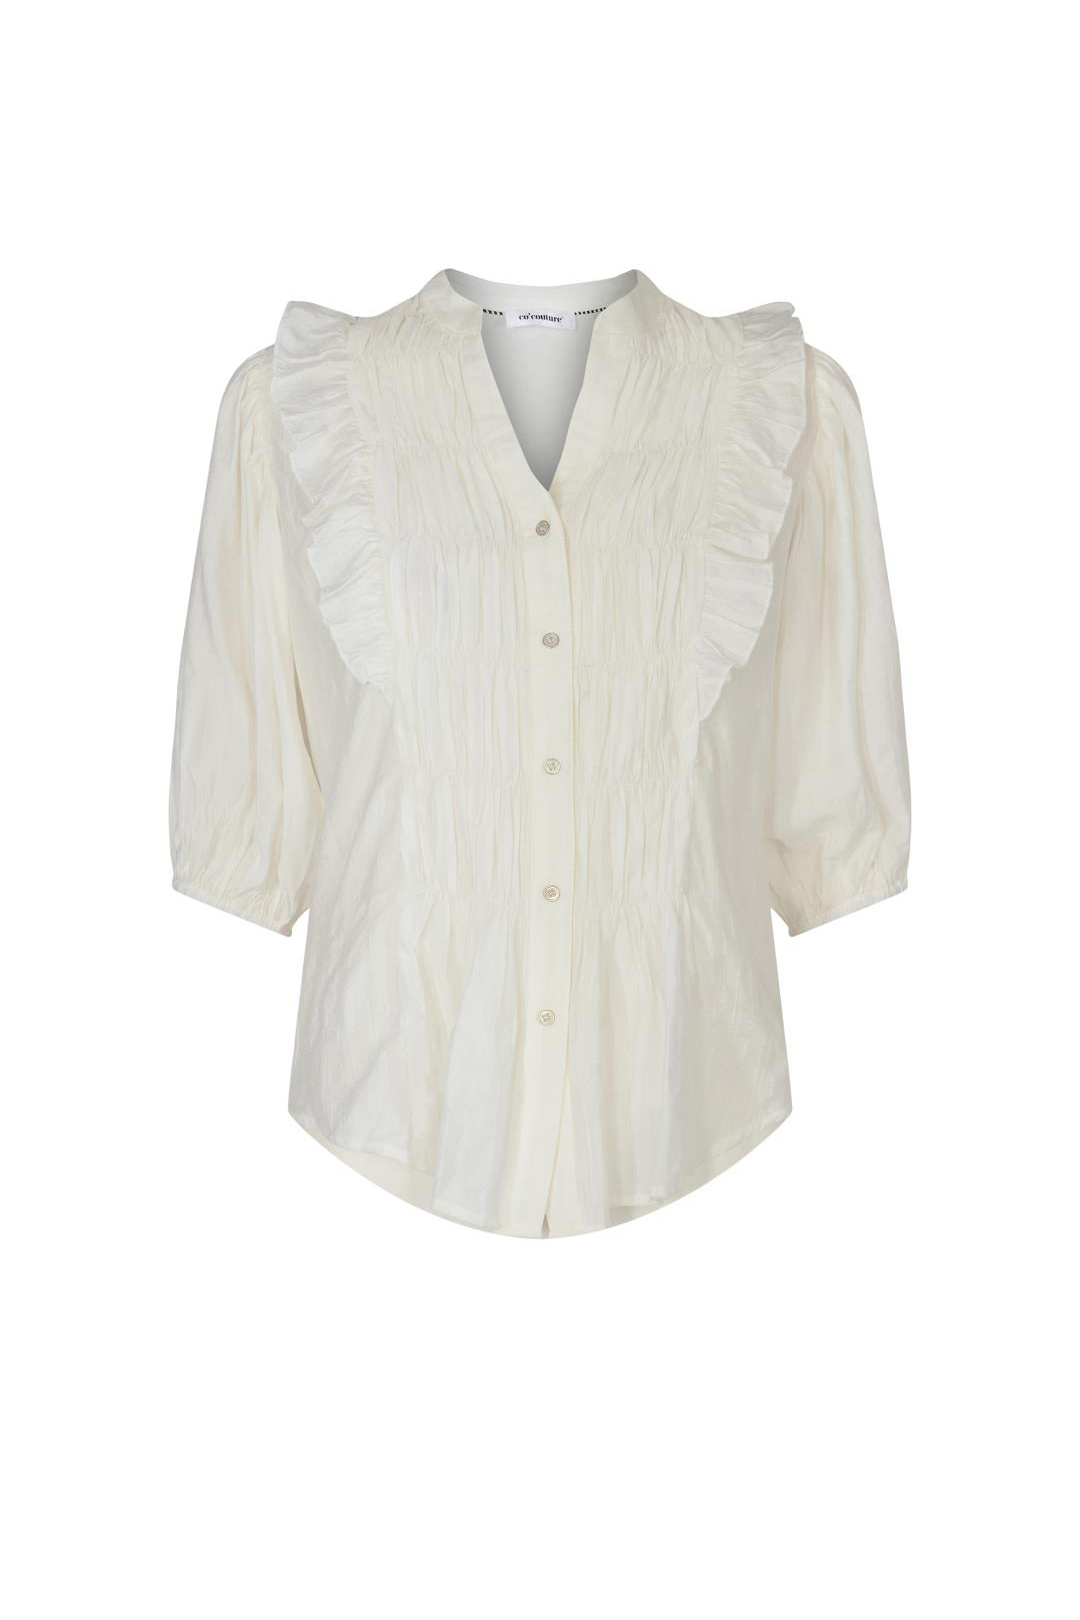 Avery Smock Shirt - Off White-1